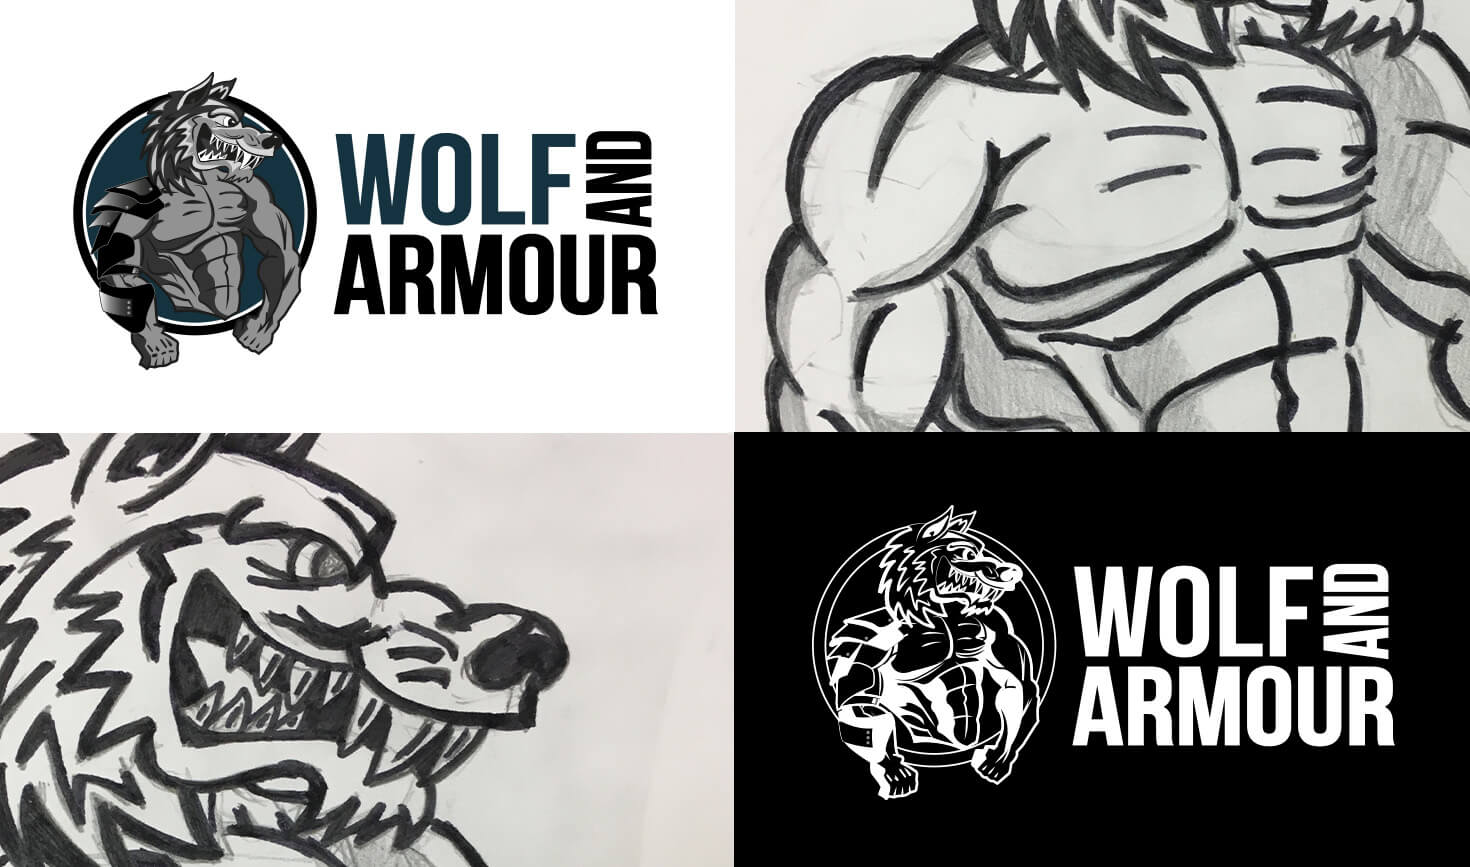 case study images_wolf and armour3